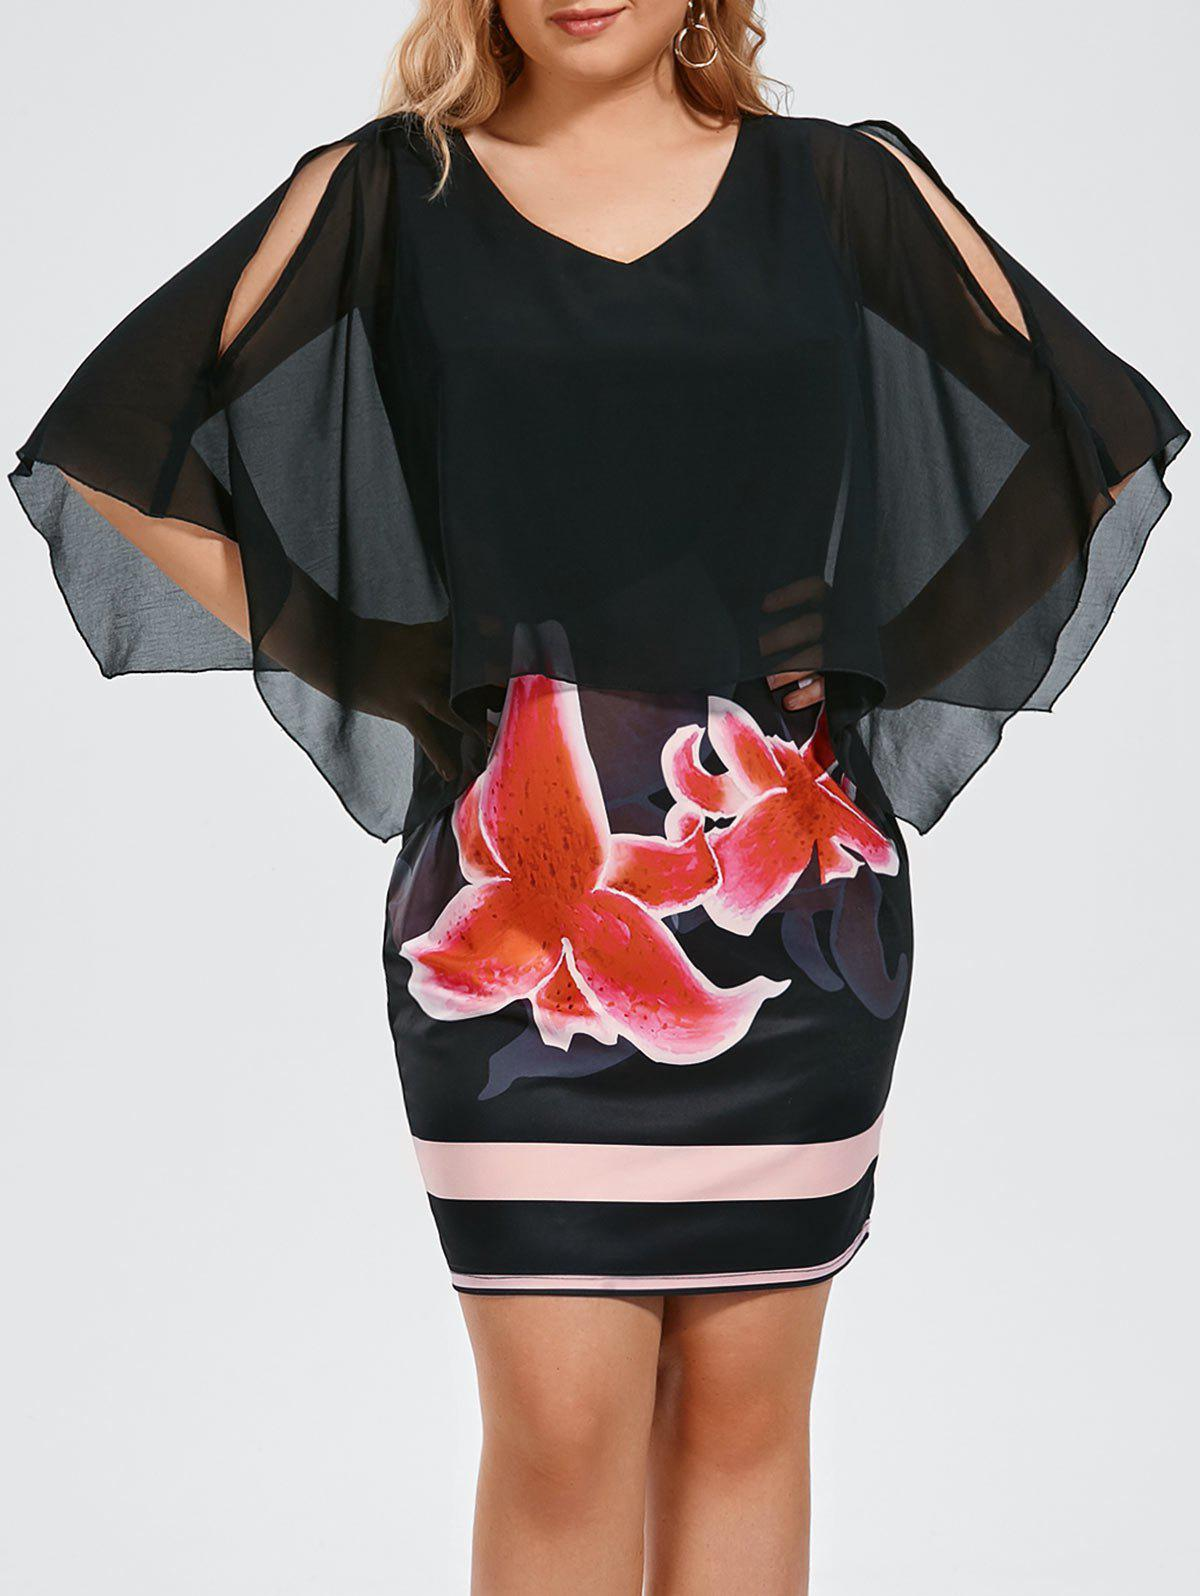 Floral Plus Size V Neck Sheath Capelet DressWOMEN<br><br>Size: XL; Color: BLACK; Style: Casual; Material: Polyester,Spandex; Silhouette: Sheath; Dresses Length: Mini; Neckline: V-Neck; Sleeve Length: Half Sleeves; Pattern Type: Floral; With Belt: No; Season: Fall,Spring,Summer; Weight: 0.3230kg; Package Contents: 1 x Dress;